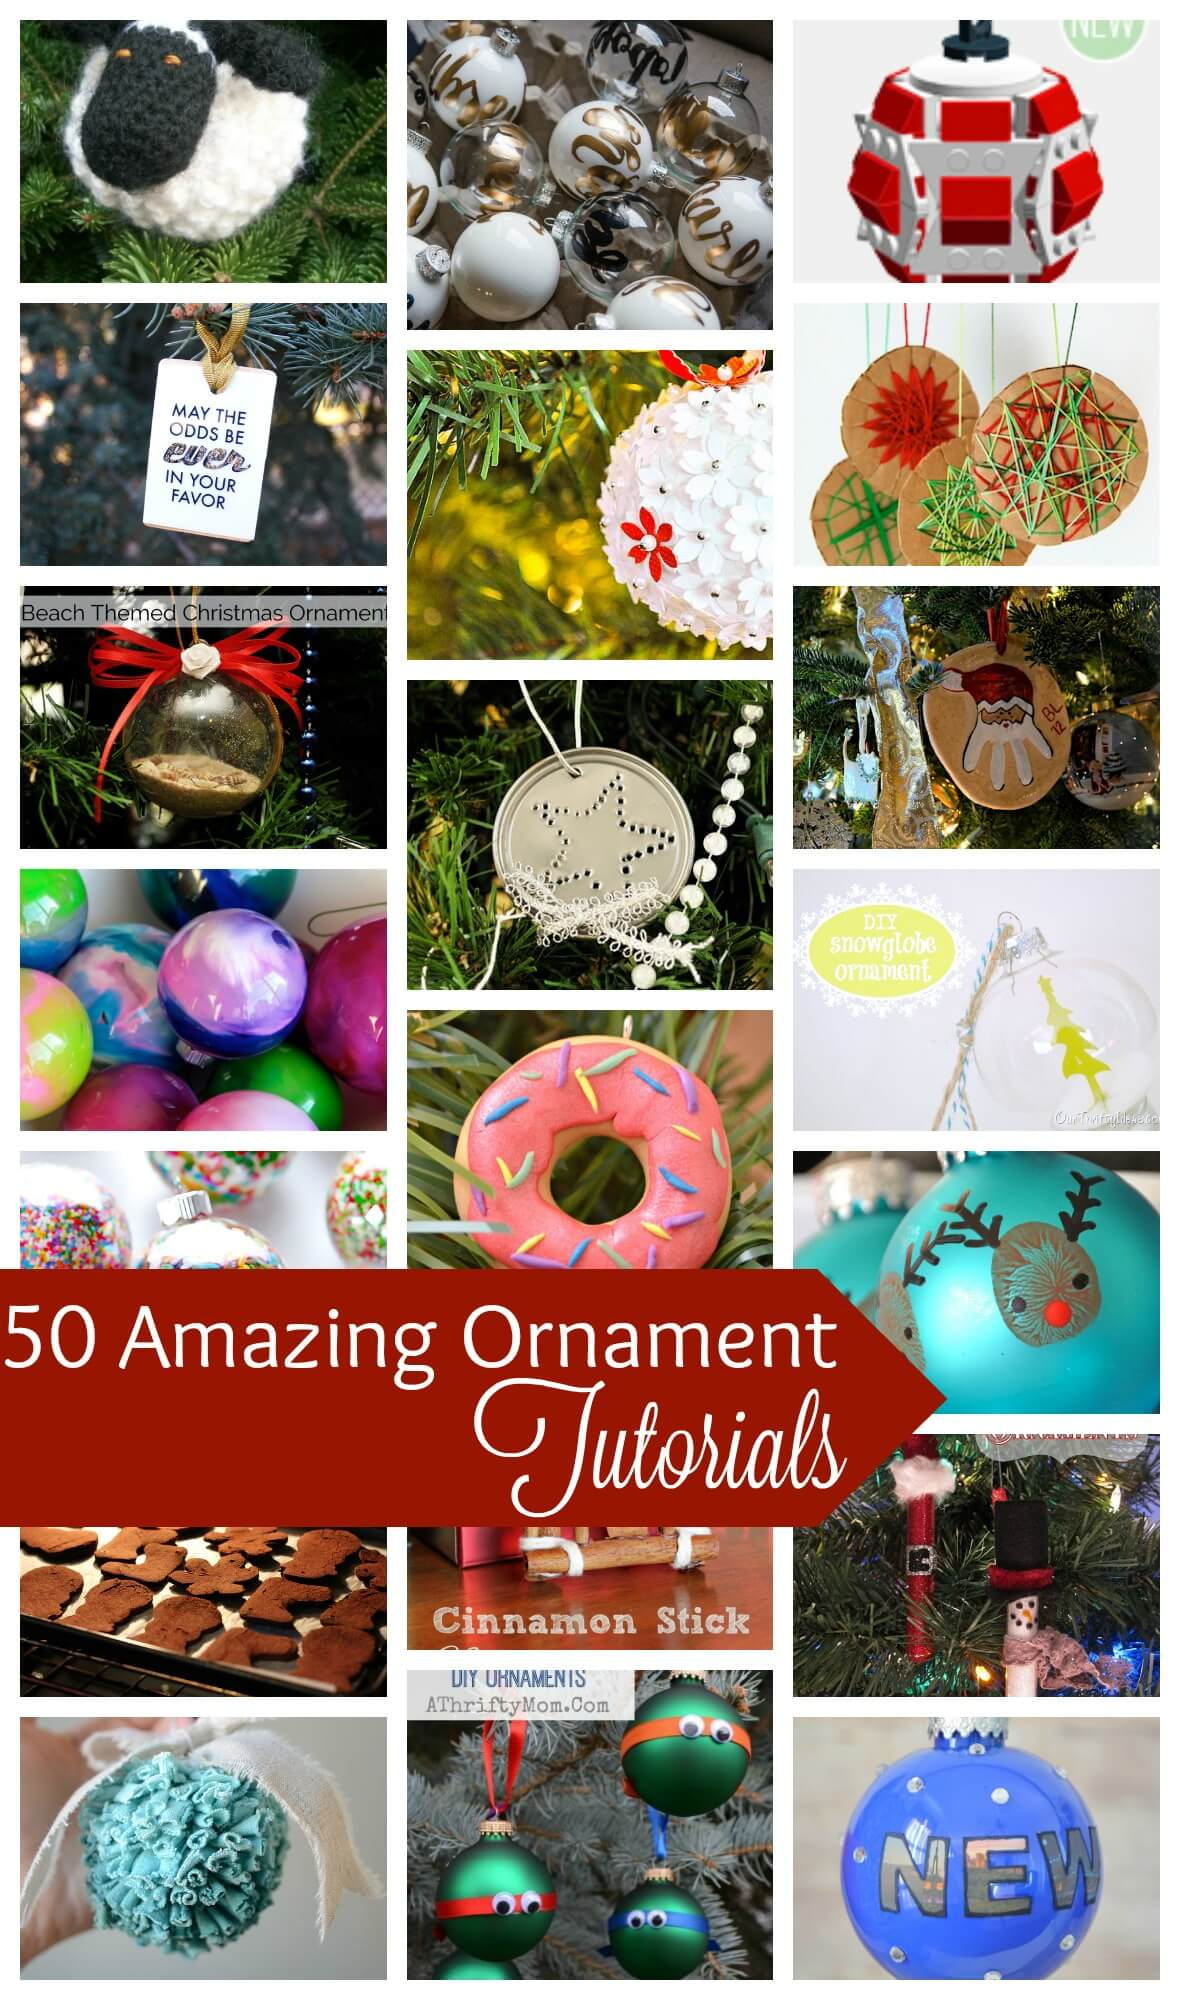 DIY Ornament tutorials and patterns from Life Sew Savory